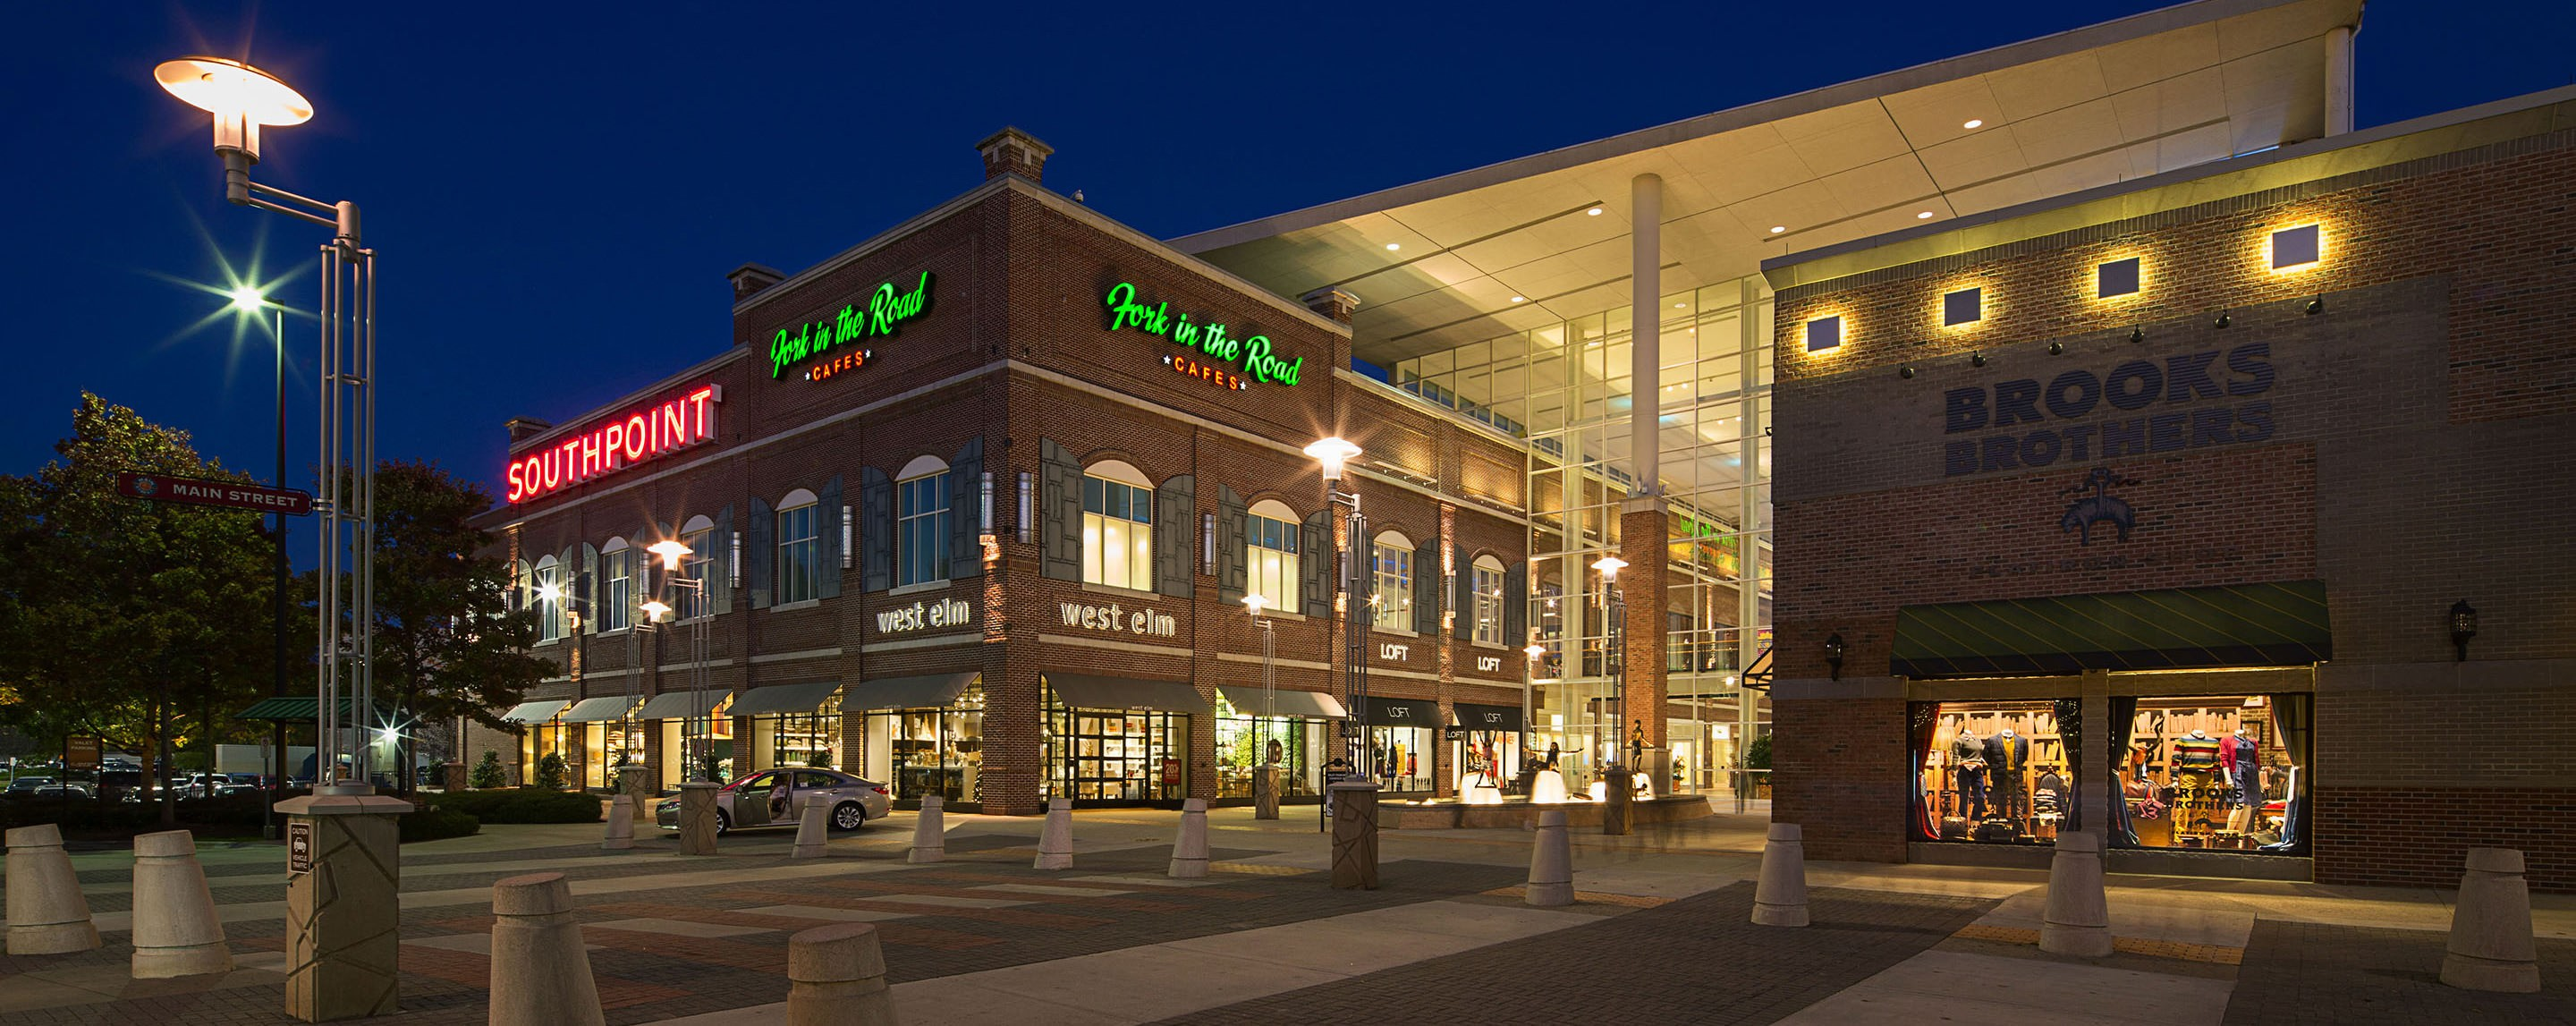 The Streets at Southpoint is seen from outside at night illuminated by interior lighting and storefronts.